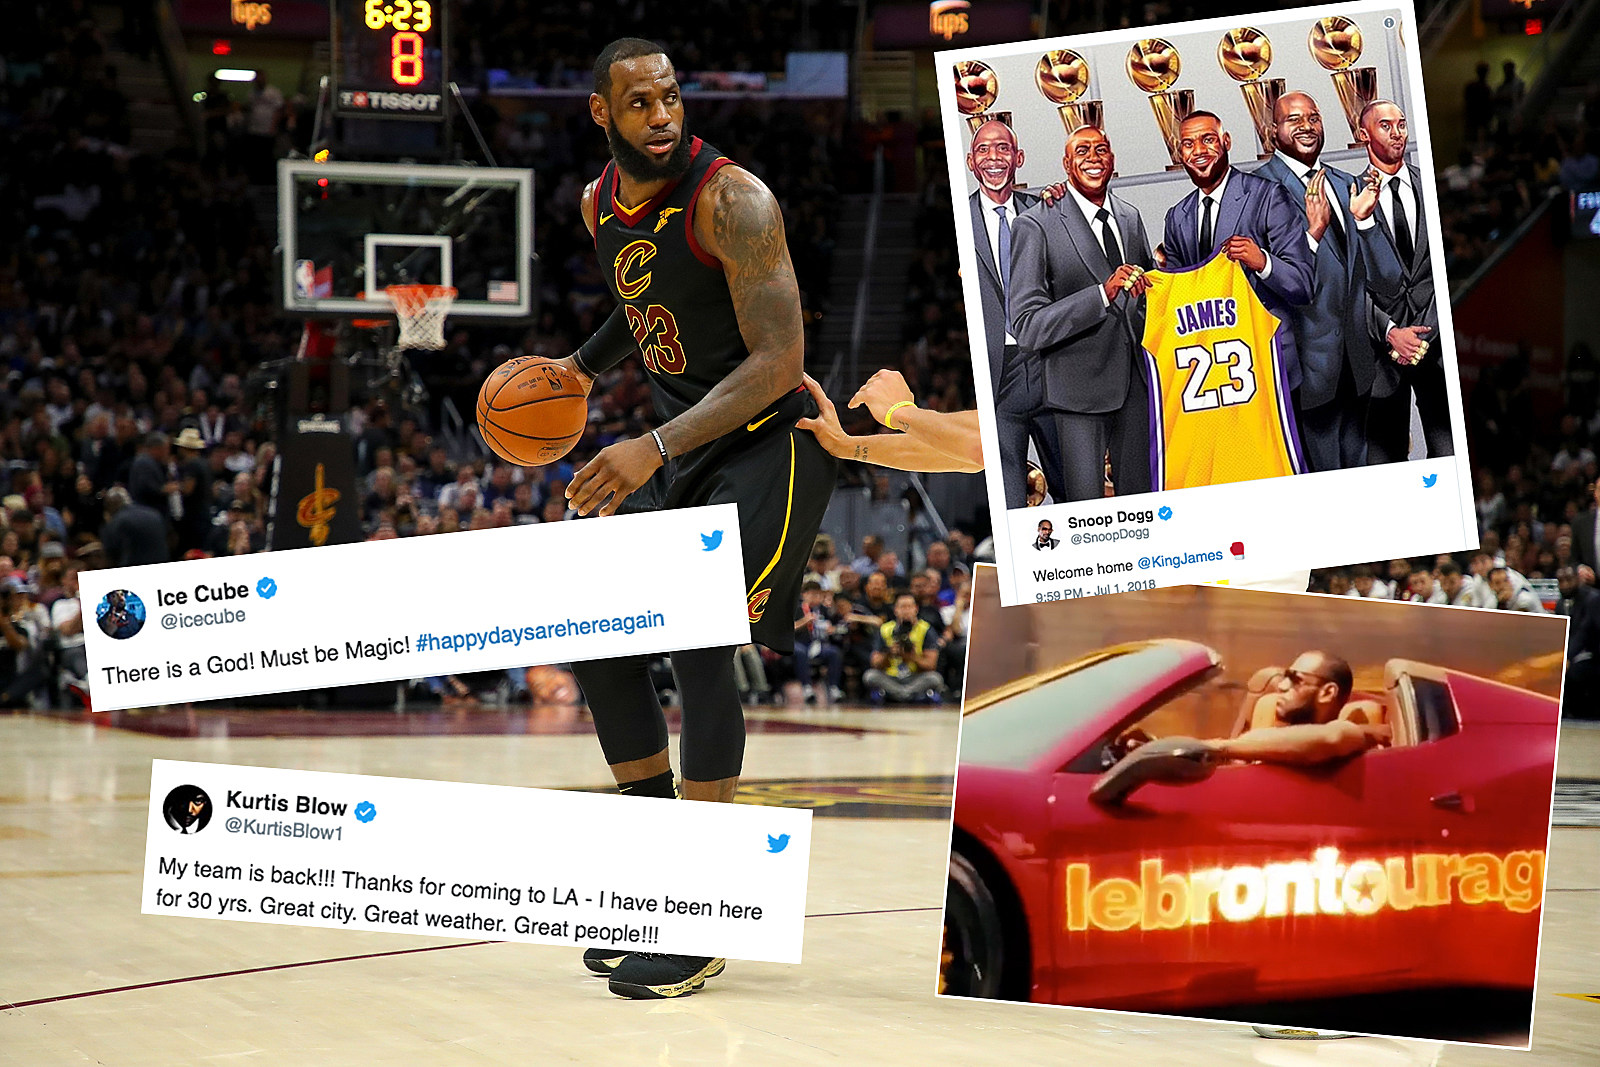 6cc4f147e82 LeBron James Joins the Lakers: Hip-Hop Reacts With Praise & Jokes